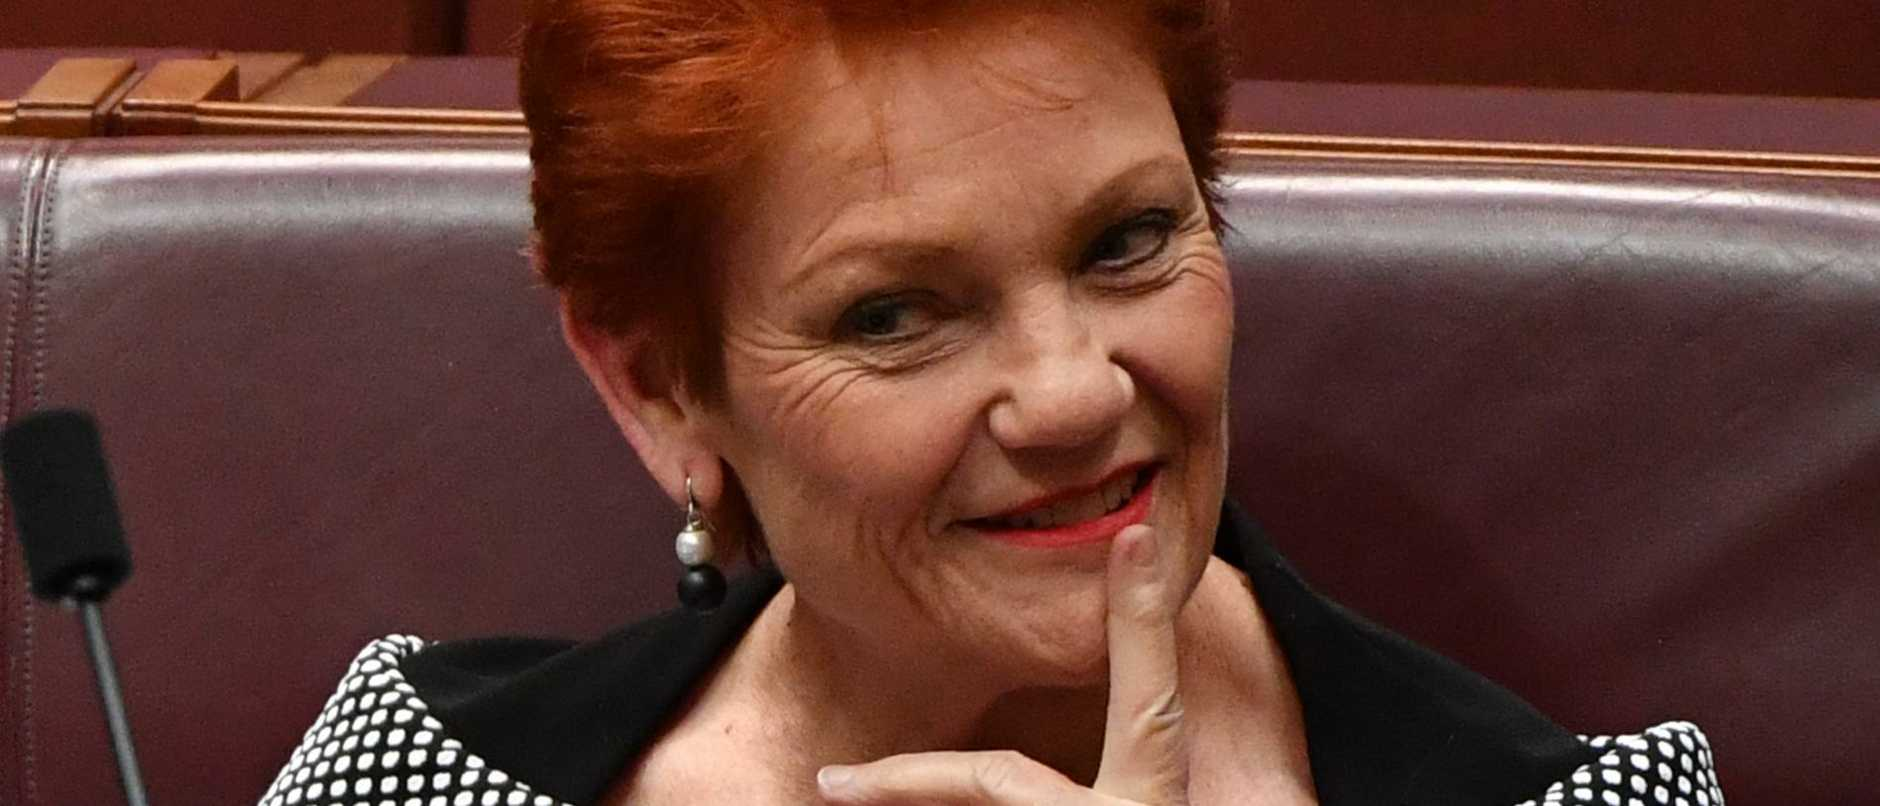 The Morrison government's union-busting legislation has been defeated in the Senate after One Nation spectacularly opposed it at the final vote.